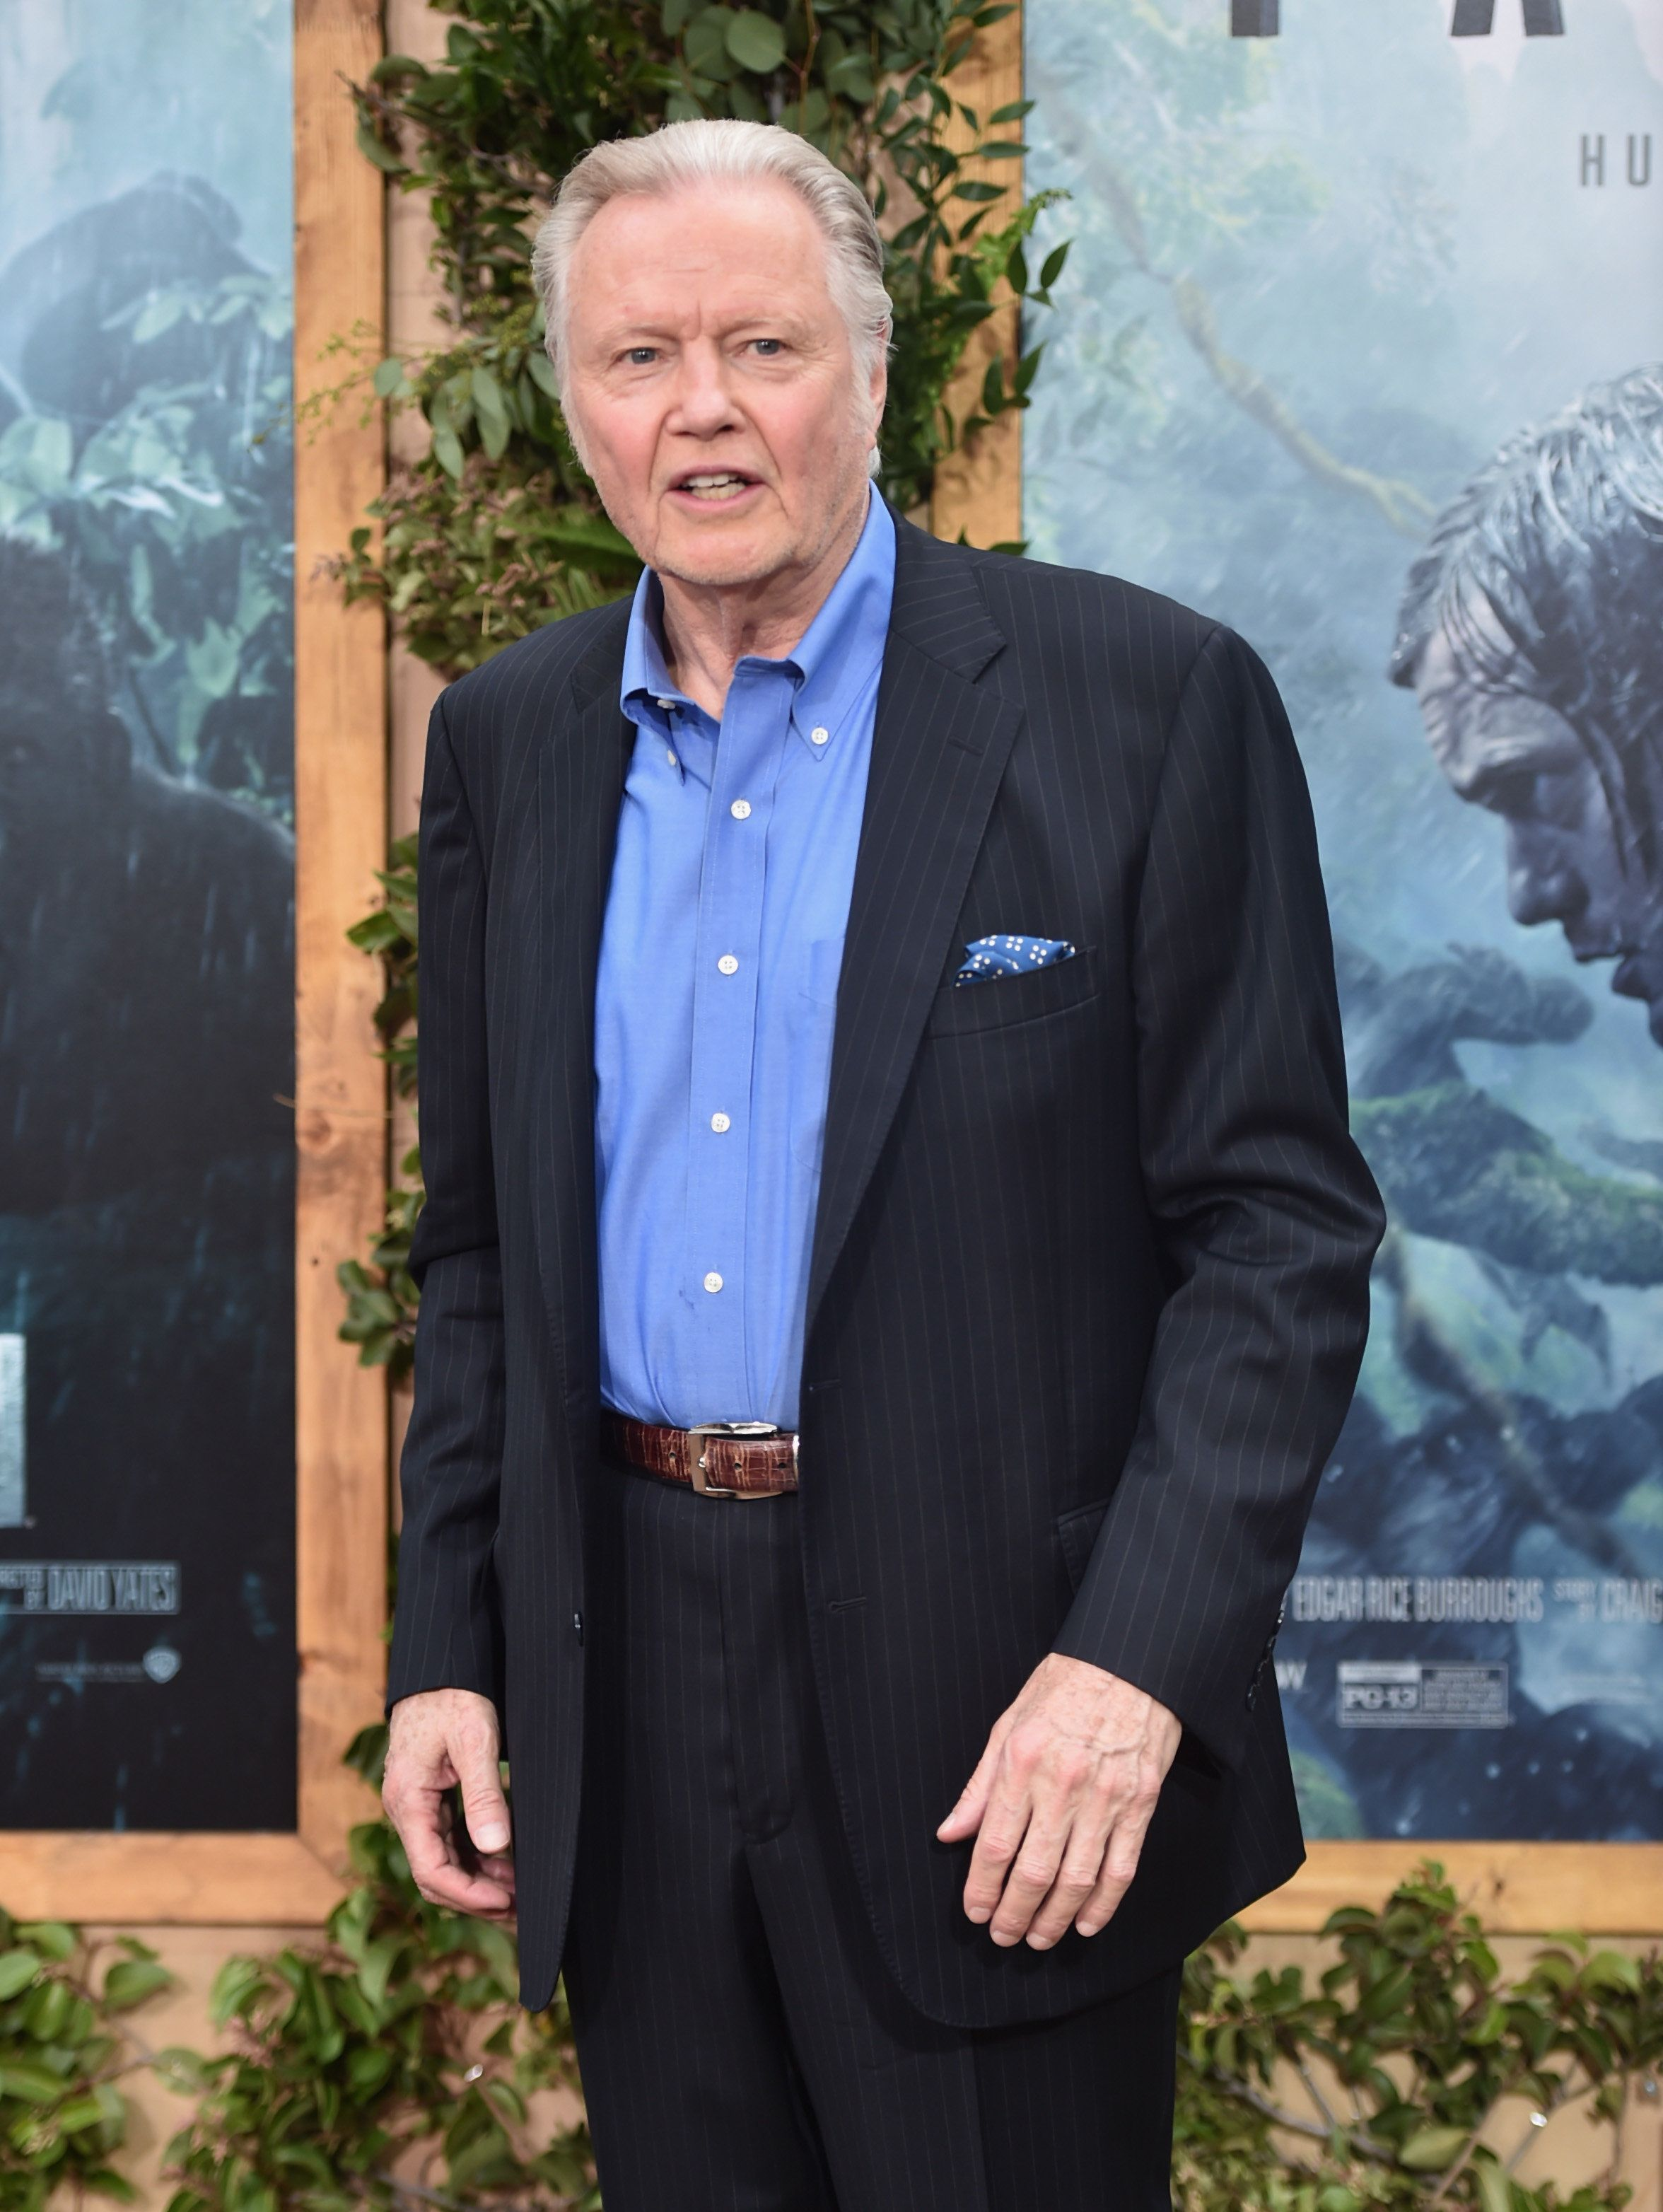 HOLLYWOOD, CA - JUNE 27:  Actor Jon Voigt attends the premiere of Warner Bros. Pictures' 'The Legend of Tarzan' at Dolby Theatre on June 27, 2016 in Hollywood, California.  (Photo by Alberto E. Rodriguez/Getty Images)